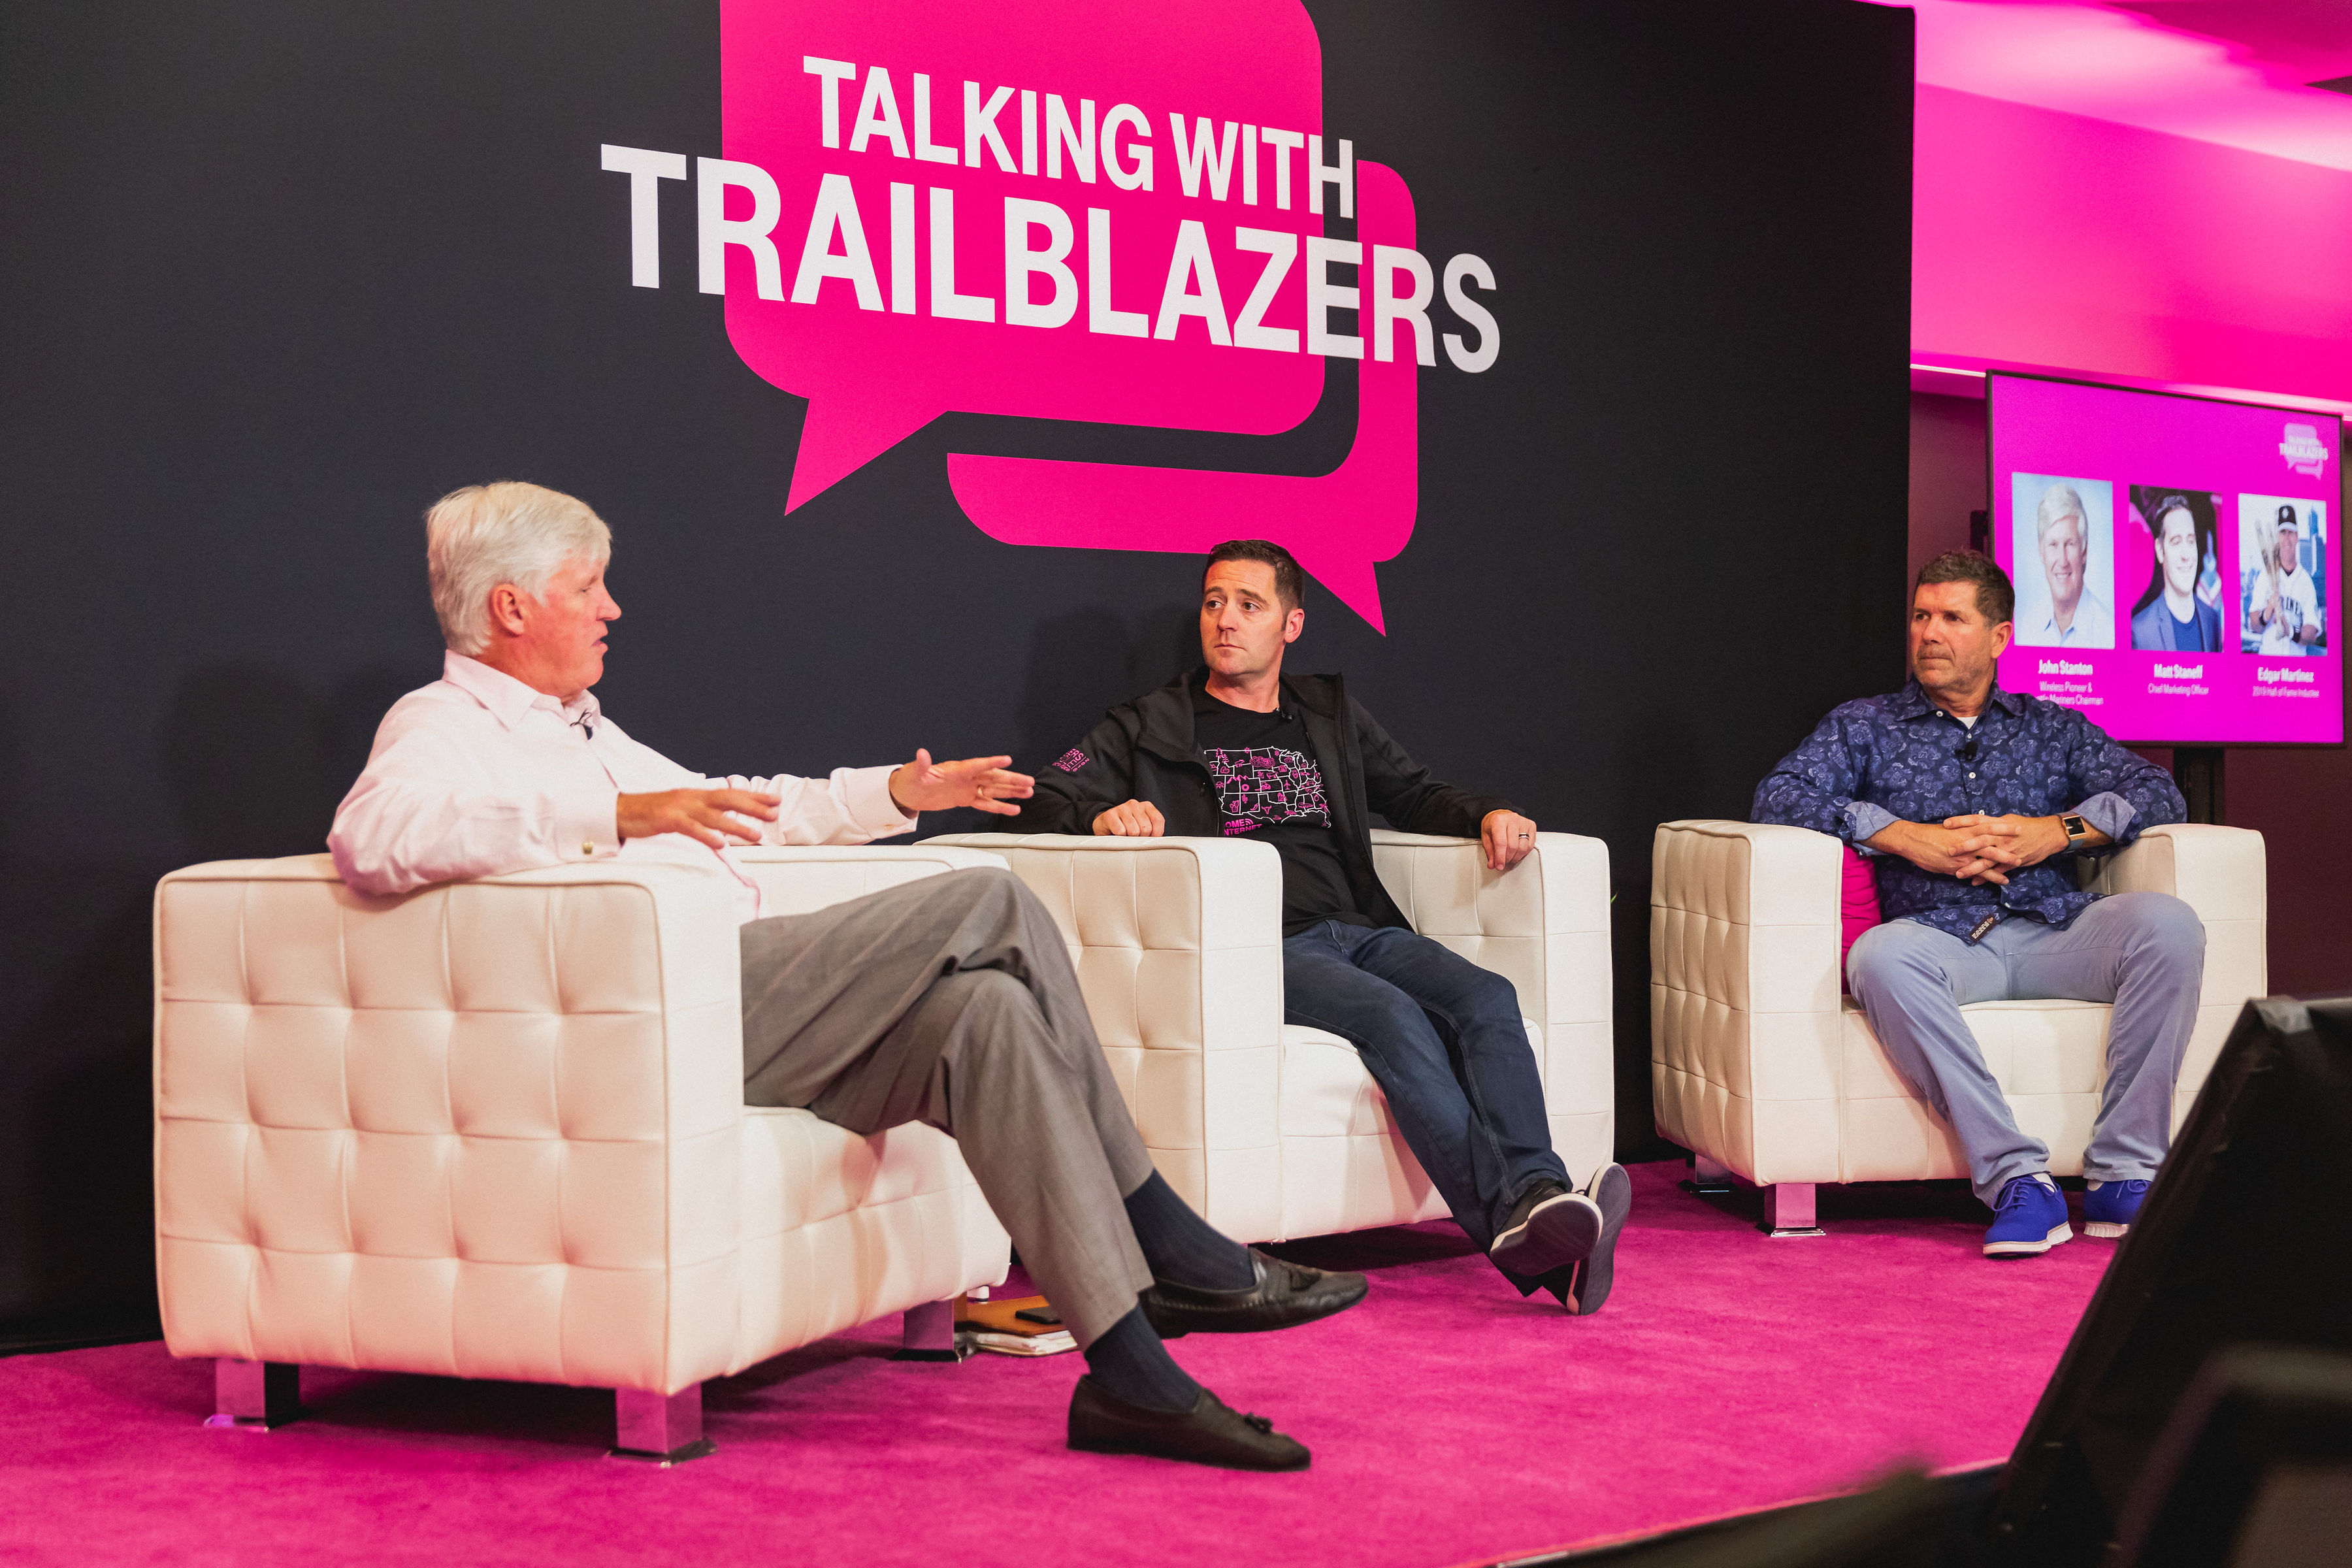 Seattle Mariners Chairman and wireless pioneer John Stanton (left) and MLB Hall of Famer Edgar Martinez (right) join T-Mobile's Chief Marketing Officer Matt Staneff (center) for the Talking with Trailblazers guest-speaker series.